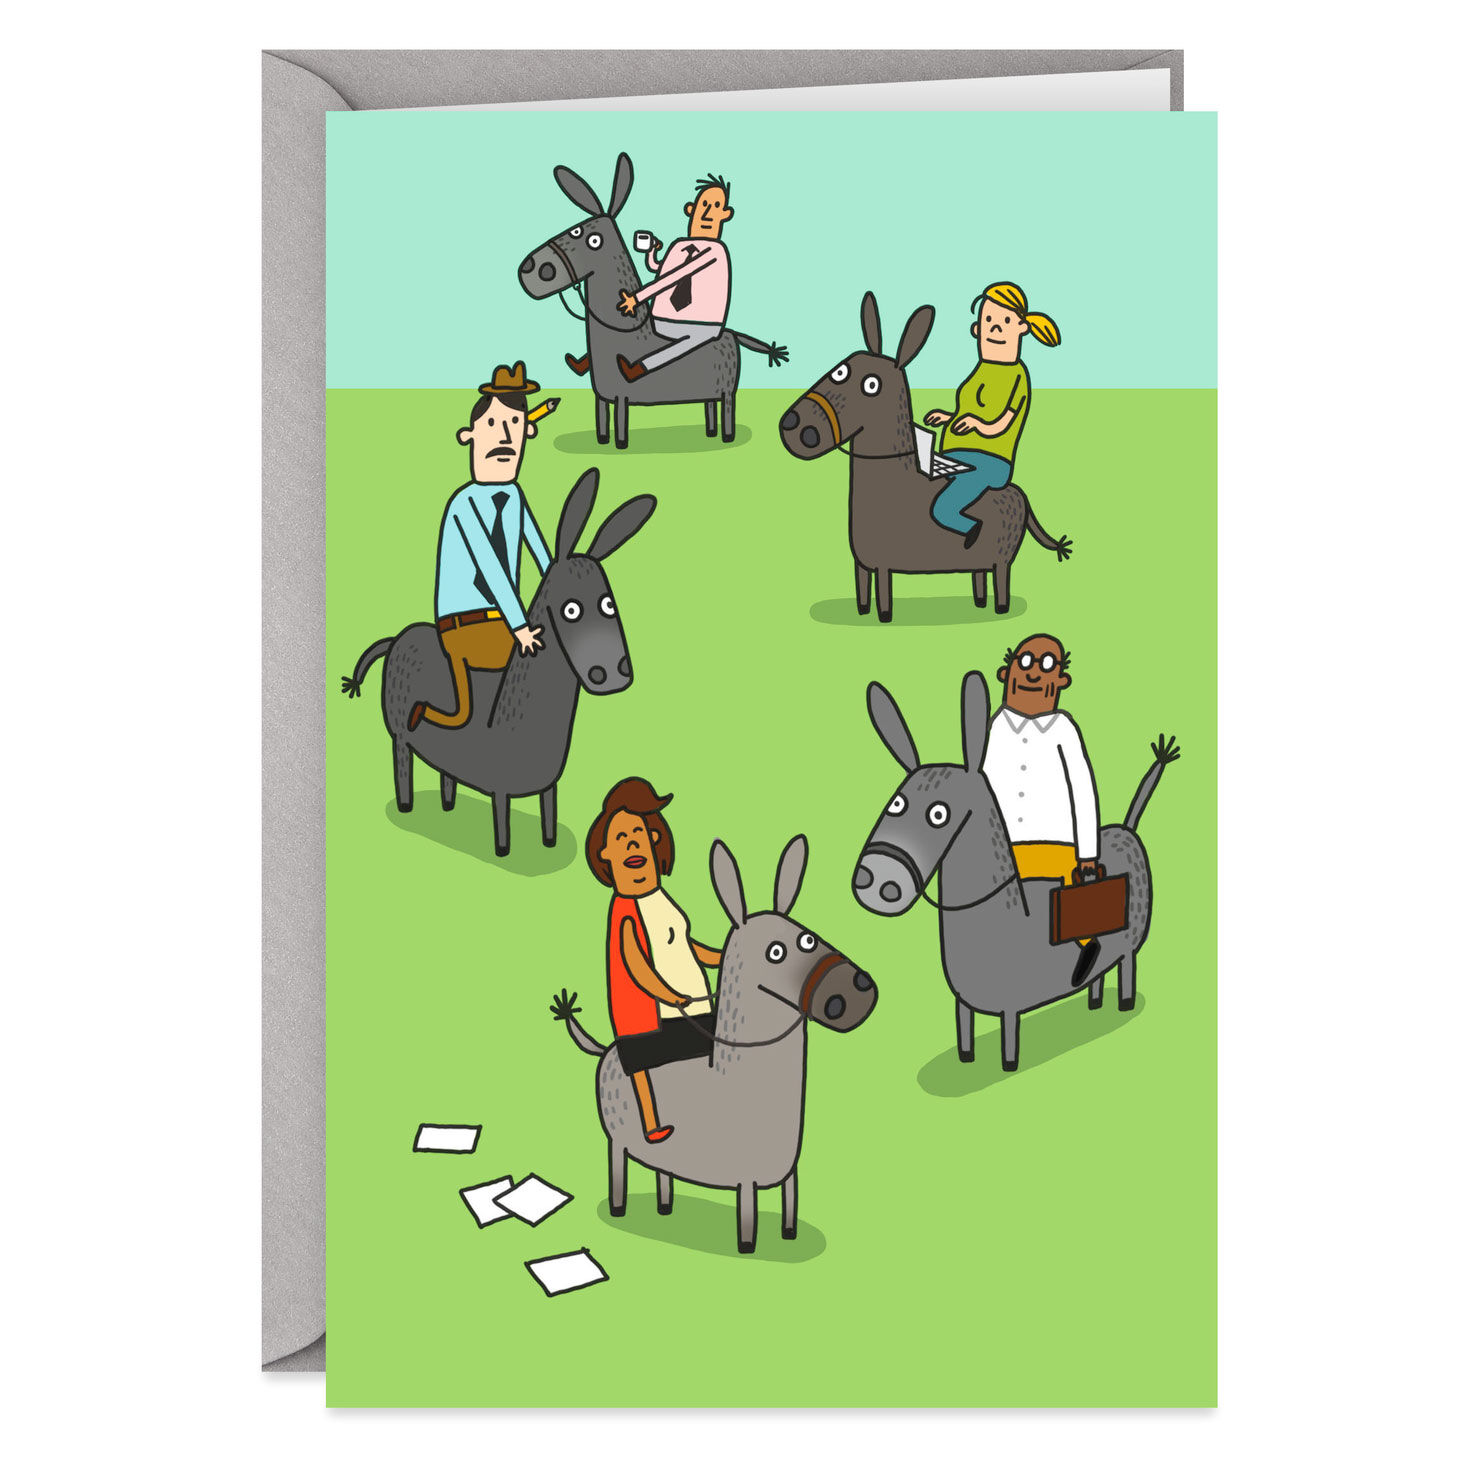 photo relating to Free Printable Funny Boss Day Cards referred to as Countrywide Manager Working day Playing cards Hallmark